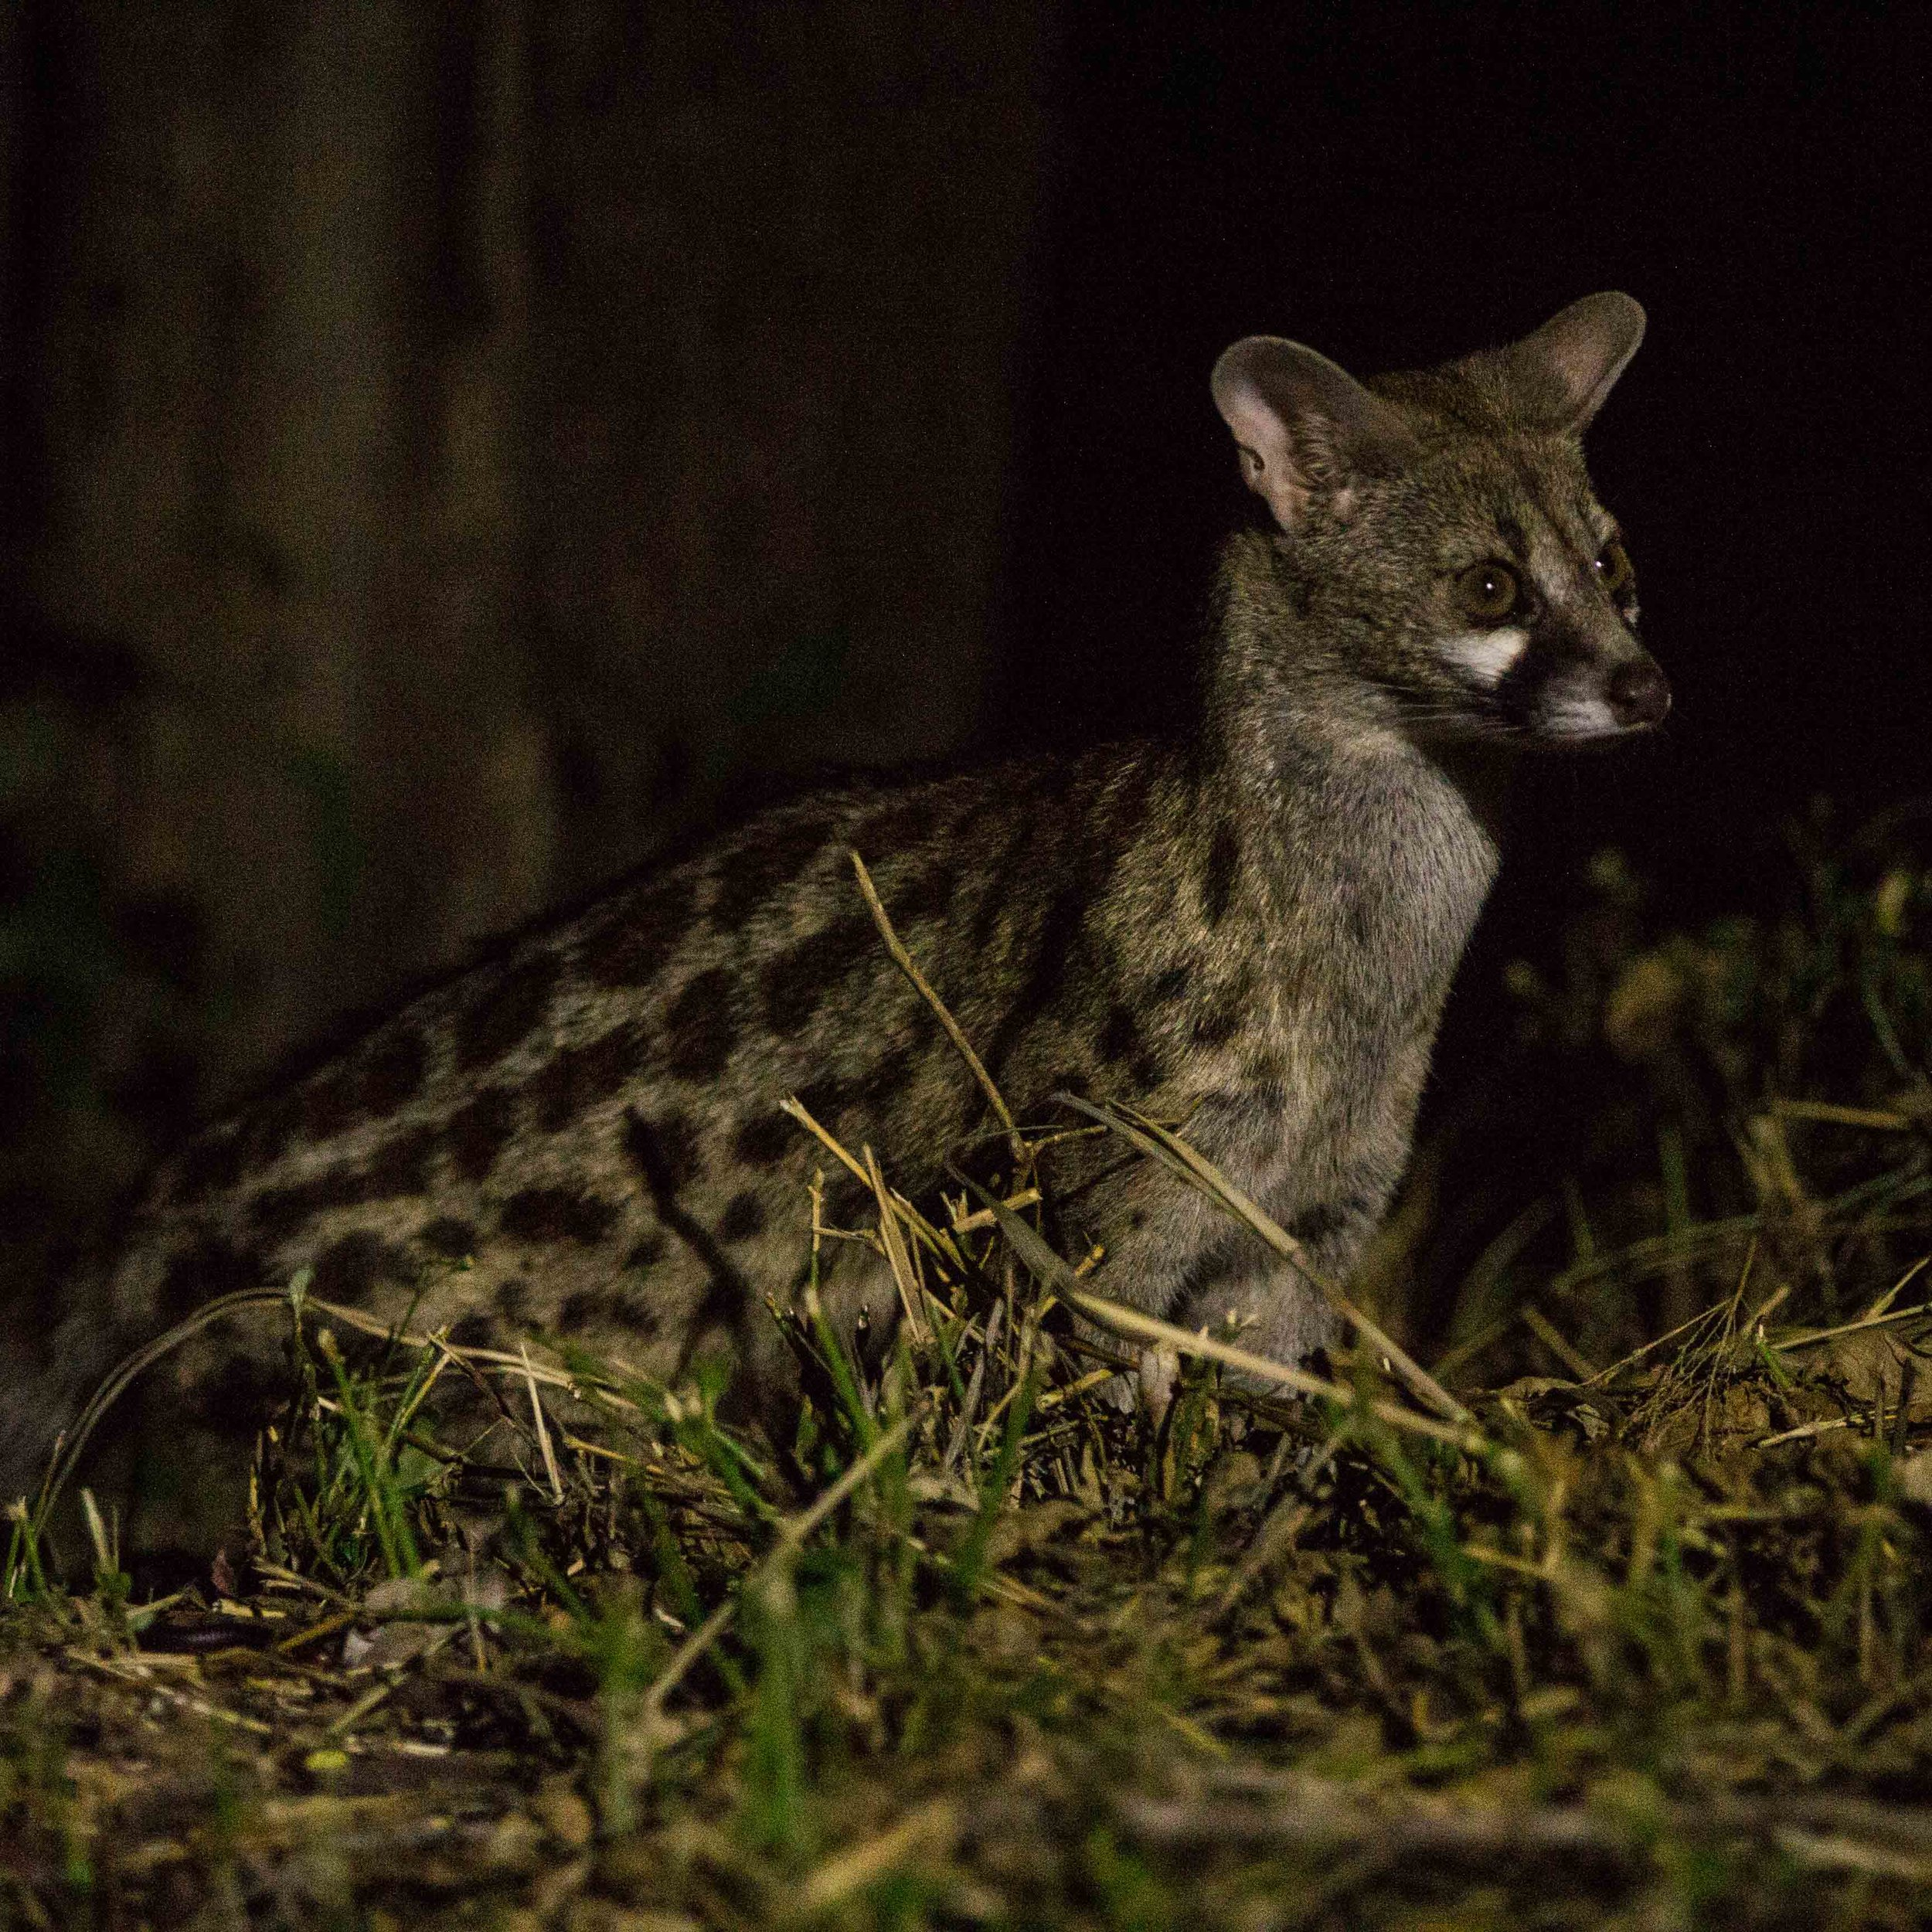 A large-spotted genet pauses briefly before continuing on its way.